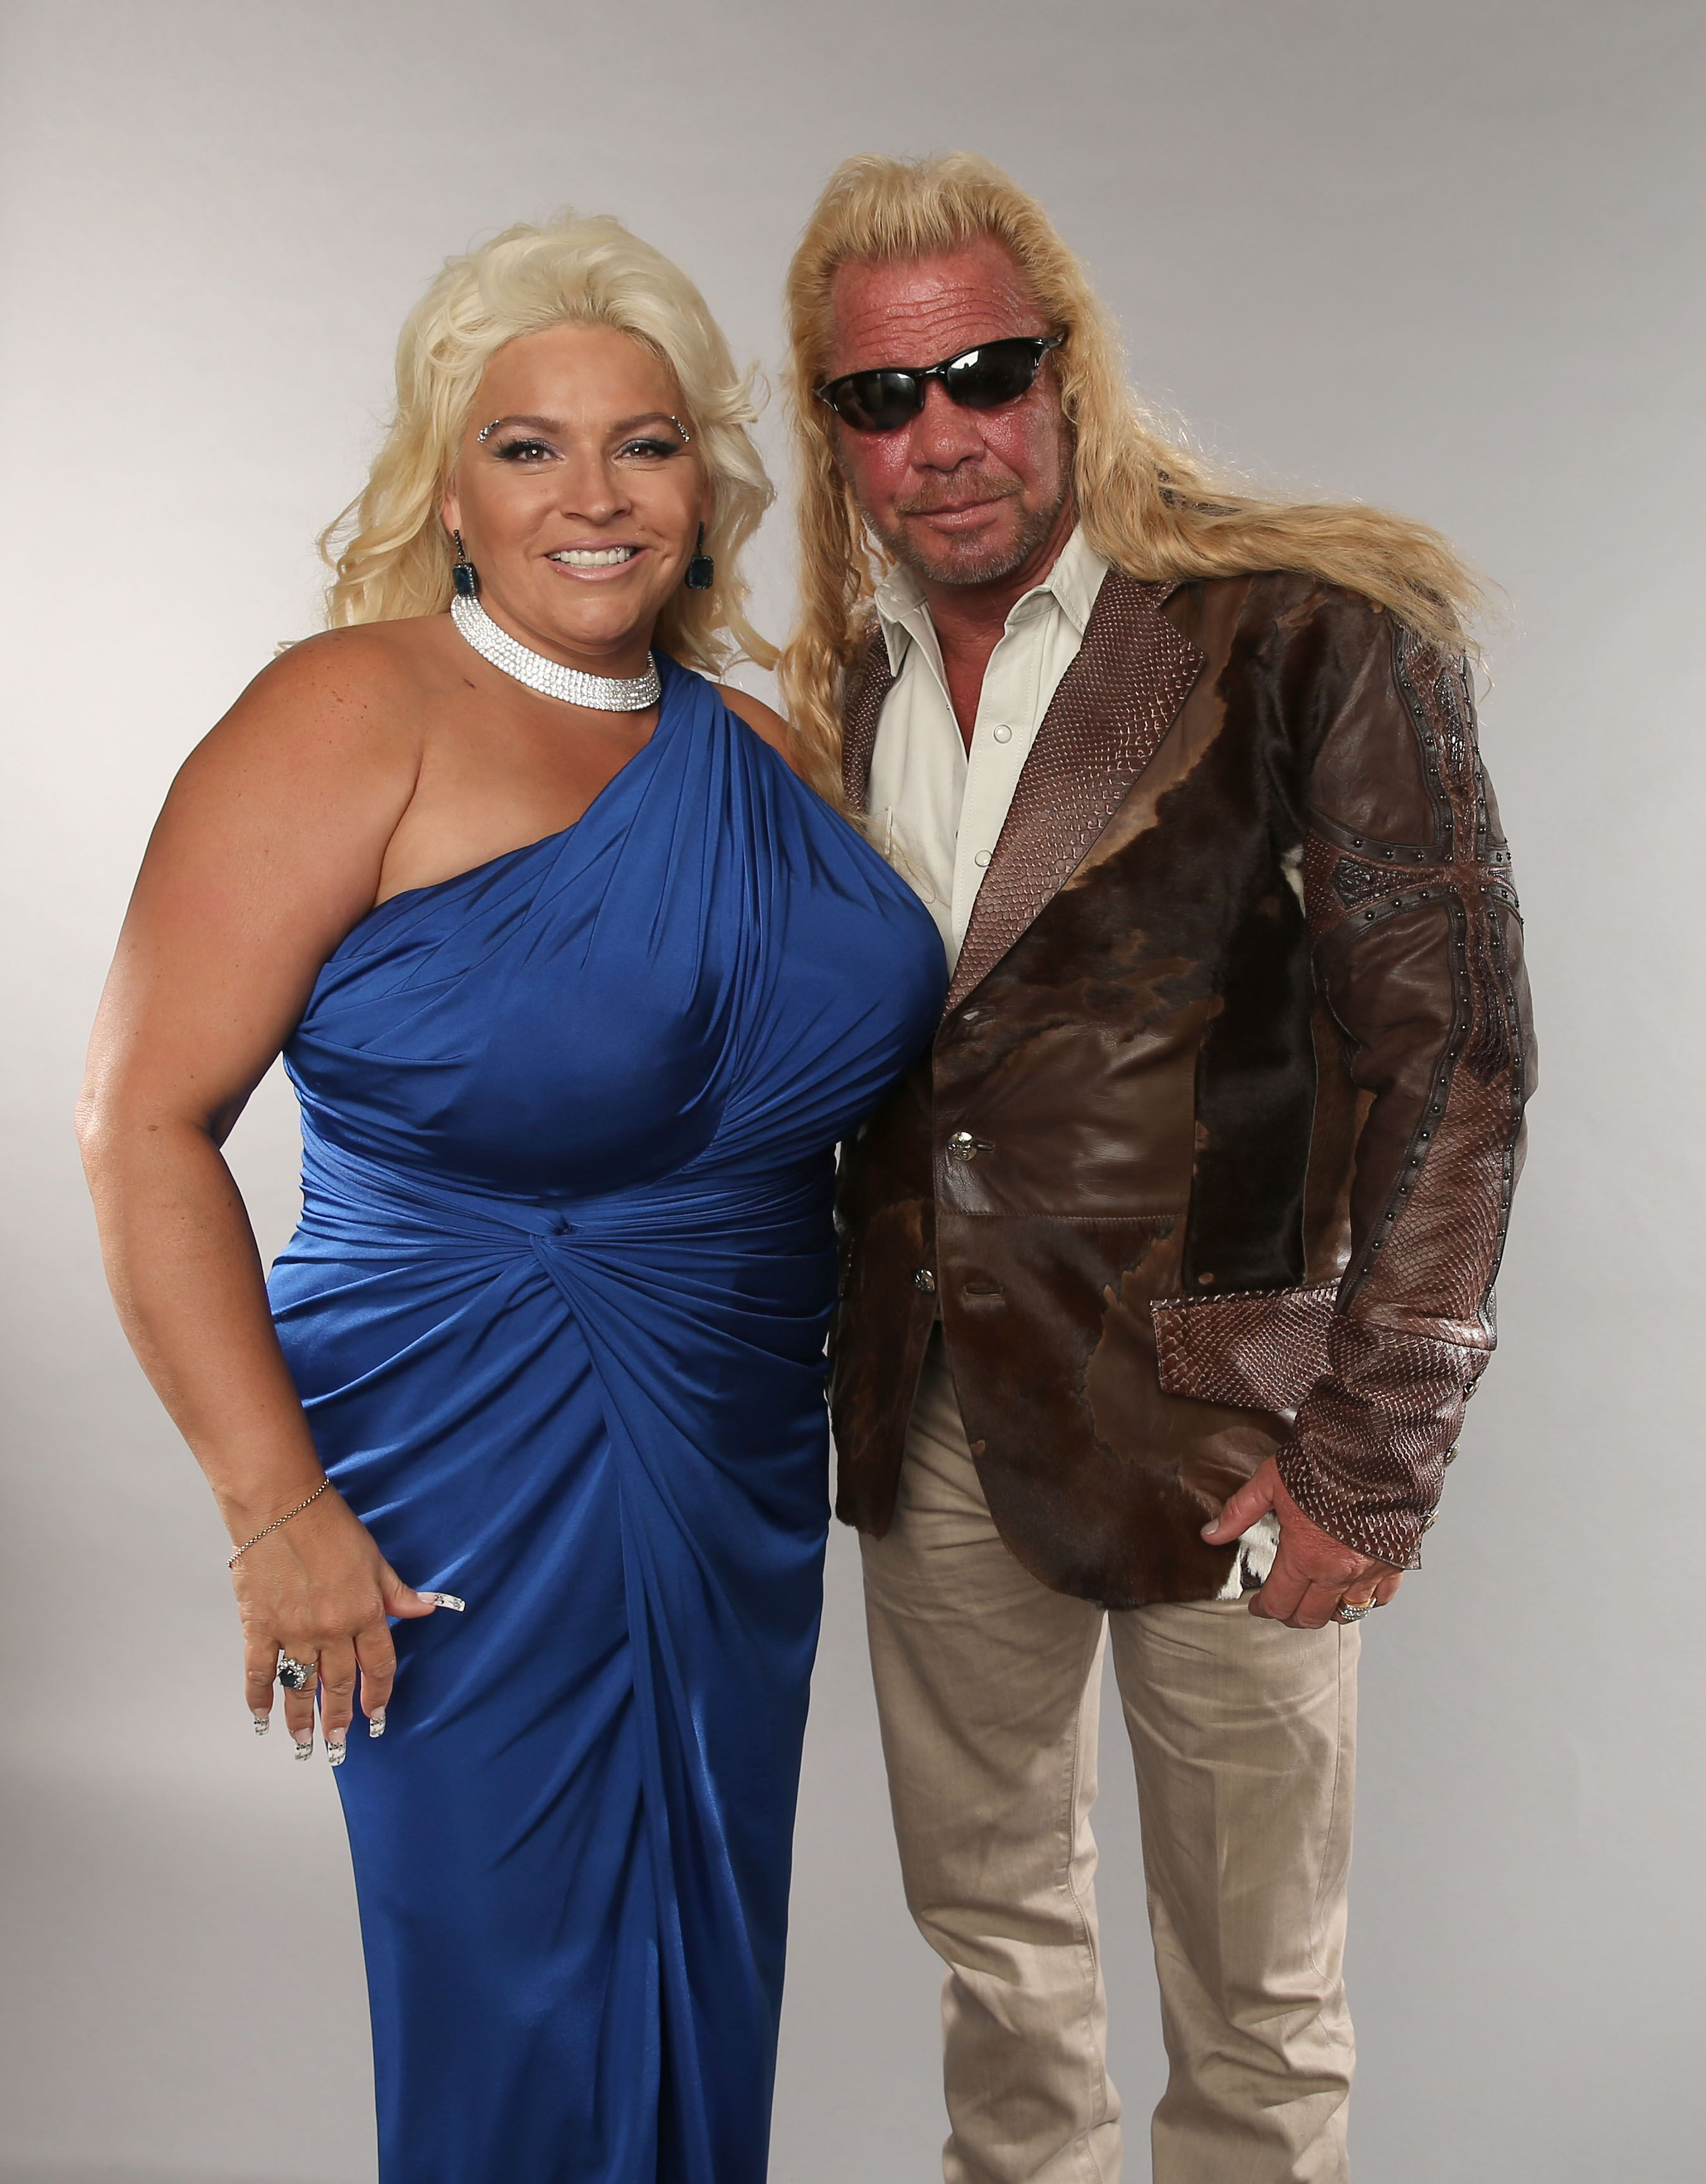 Duane Dog Lee Chapman and Beth Chapman pose at the Wonderwall portrait studio | Getty Images